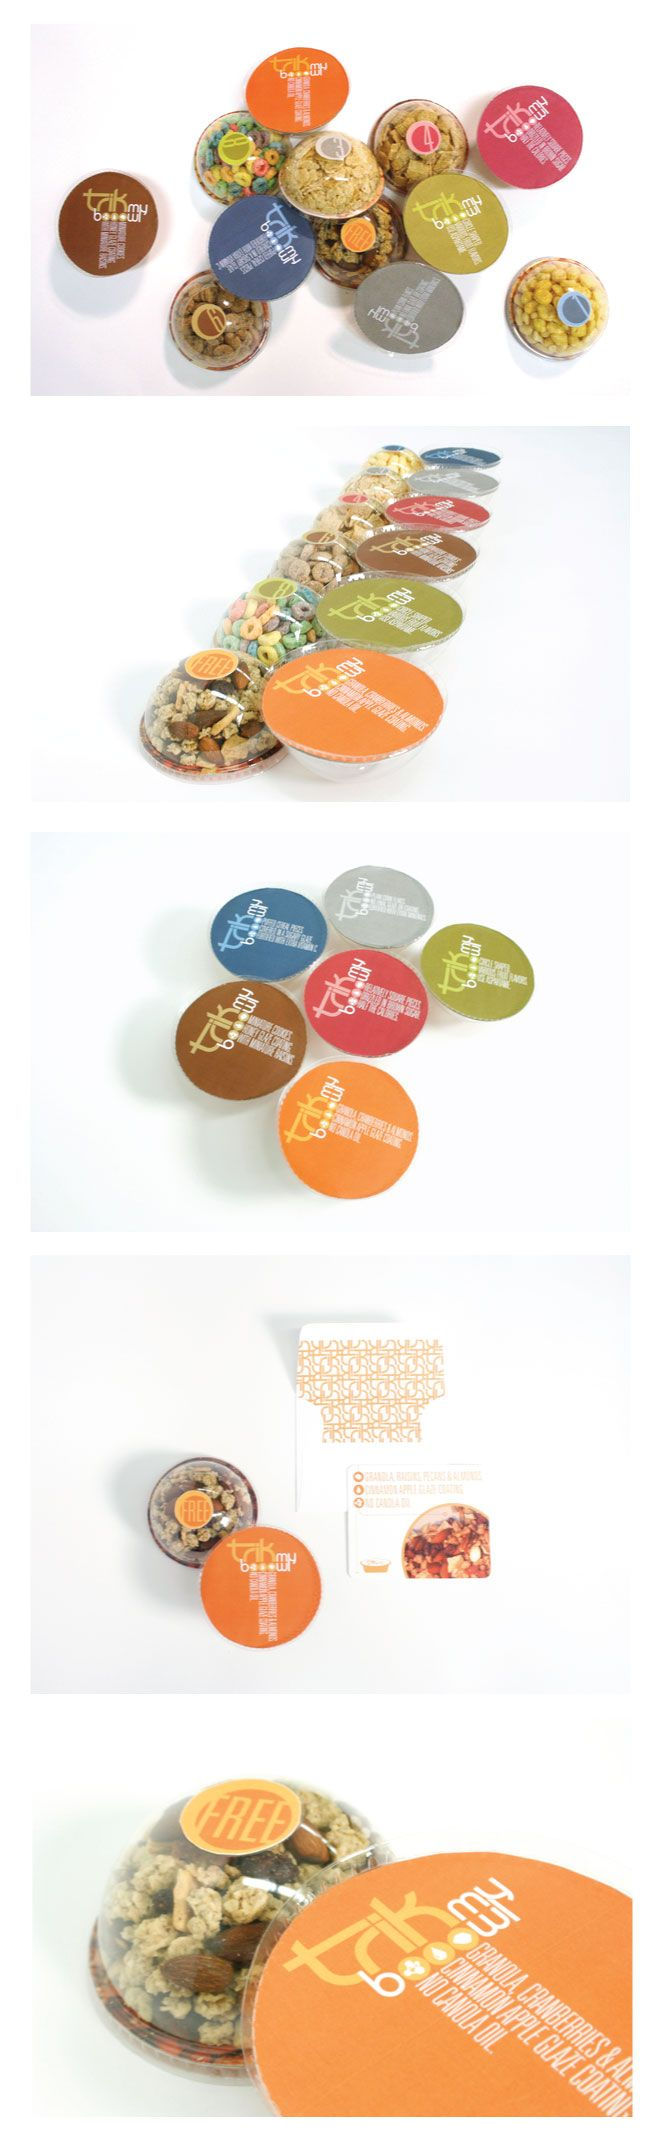 Cereal packaging graphic design by Teresa Cunningham I want some cereal now packaging and I don't even like cereal PD